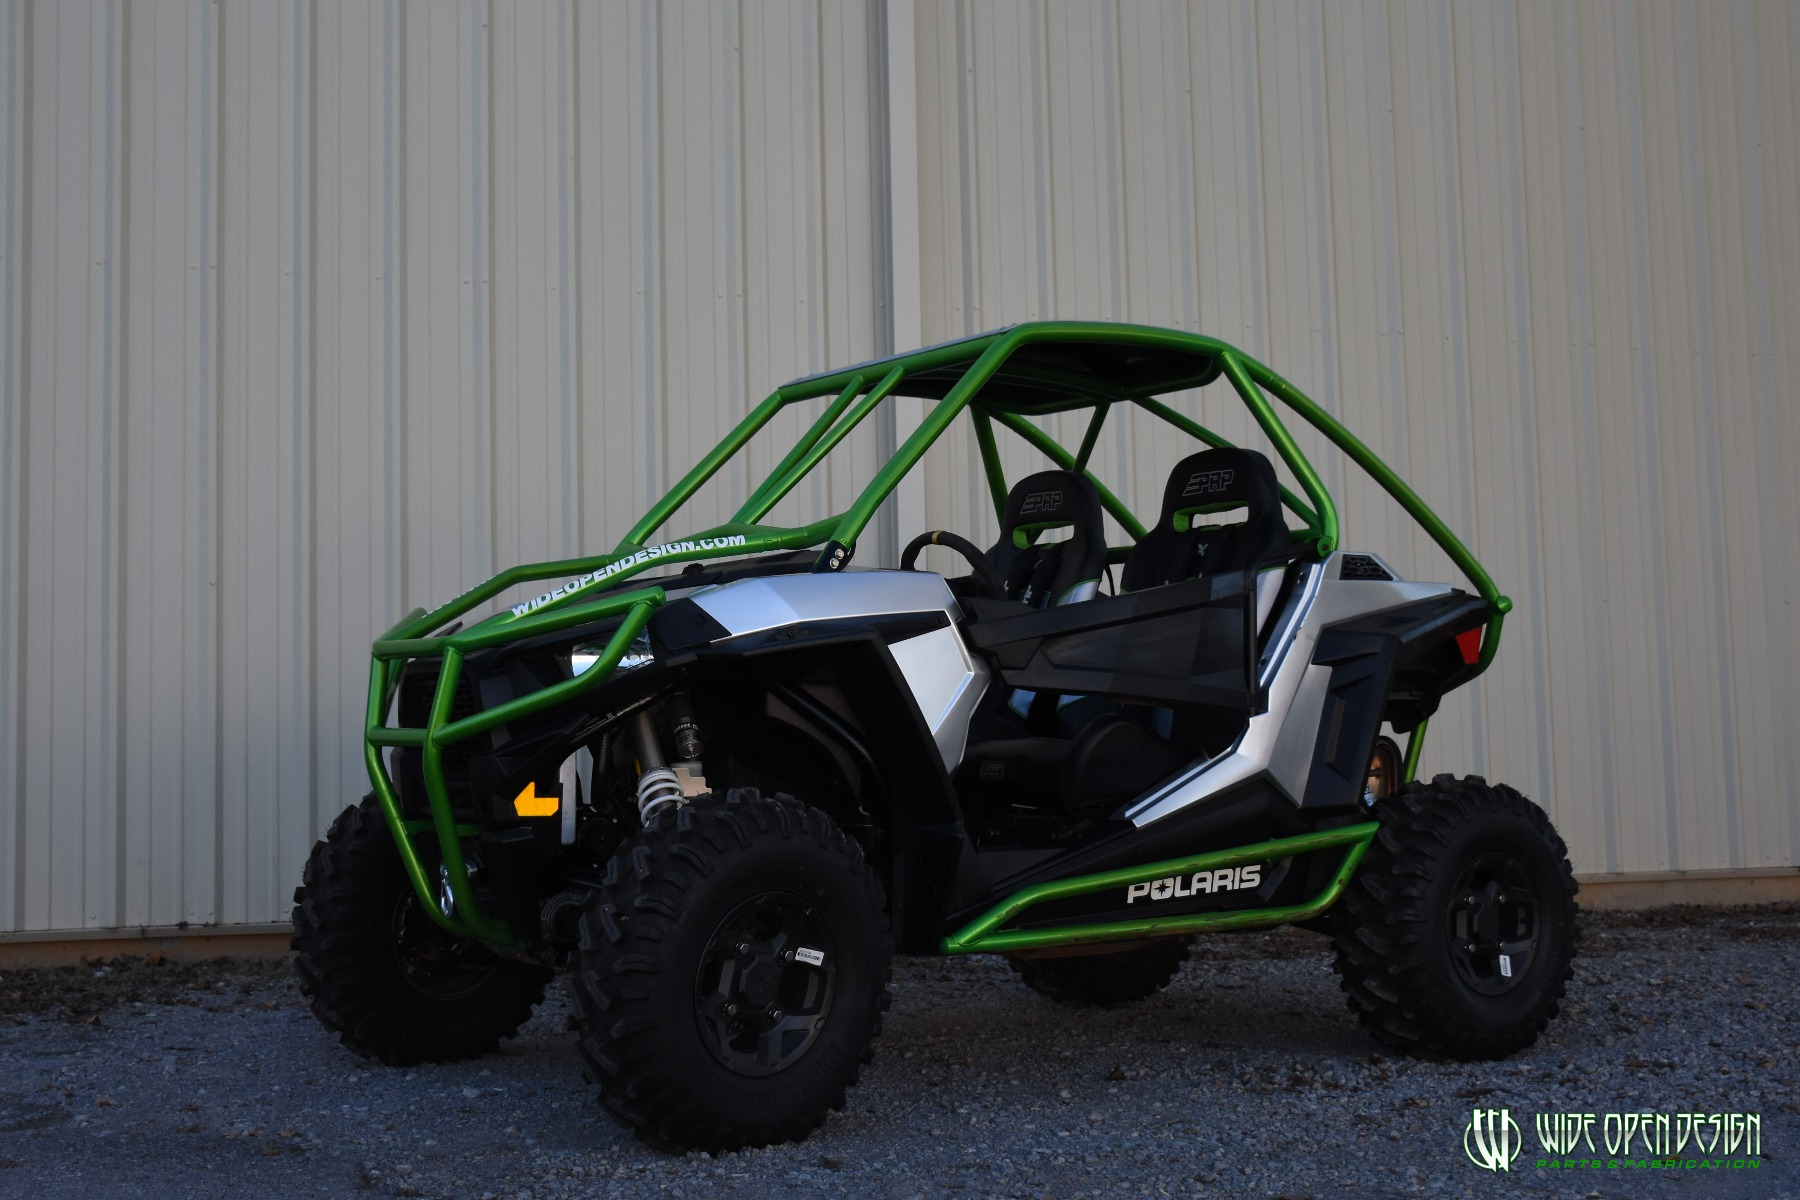 Jason's 1000s RZR with Wide Open Design Rolled Roof Cage, Front Bumper with Tie In, and Rocker Guards 15